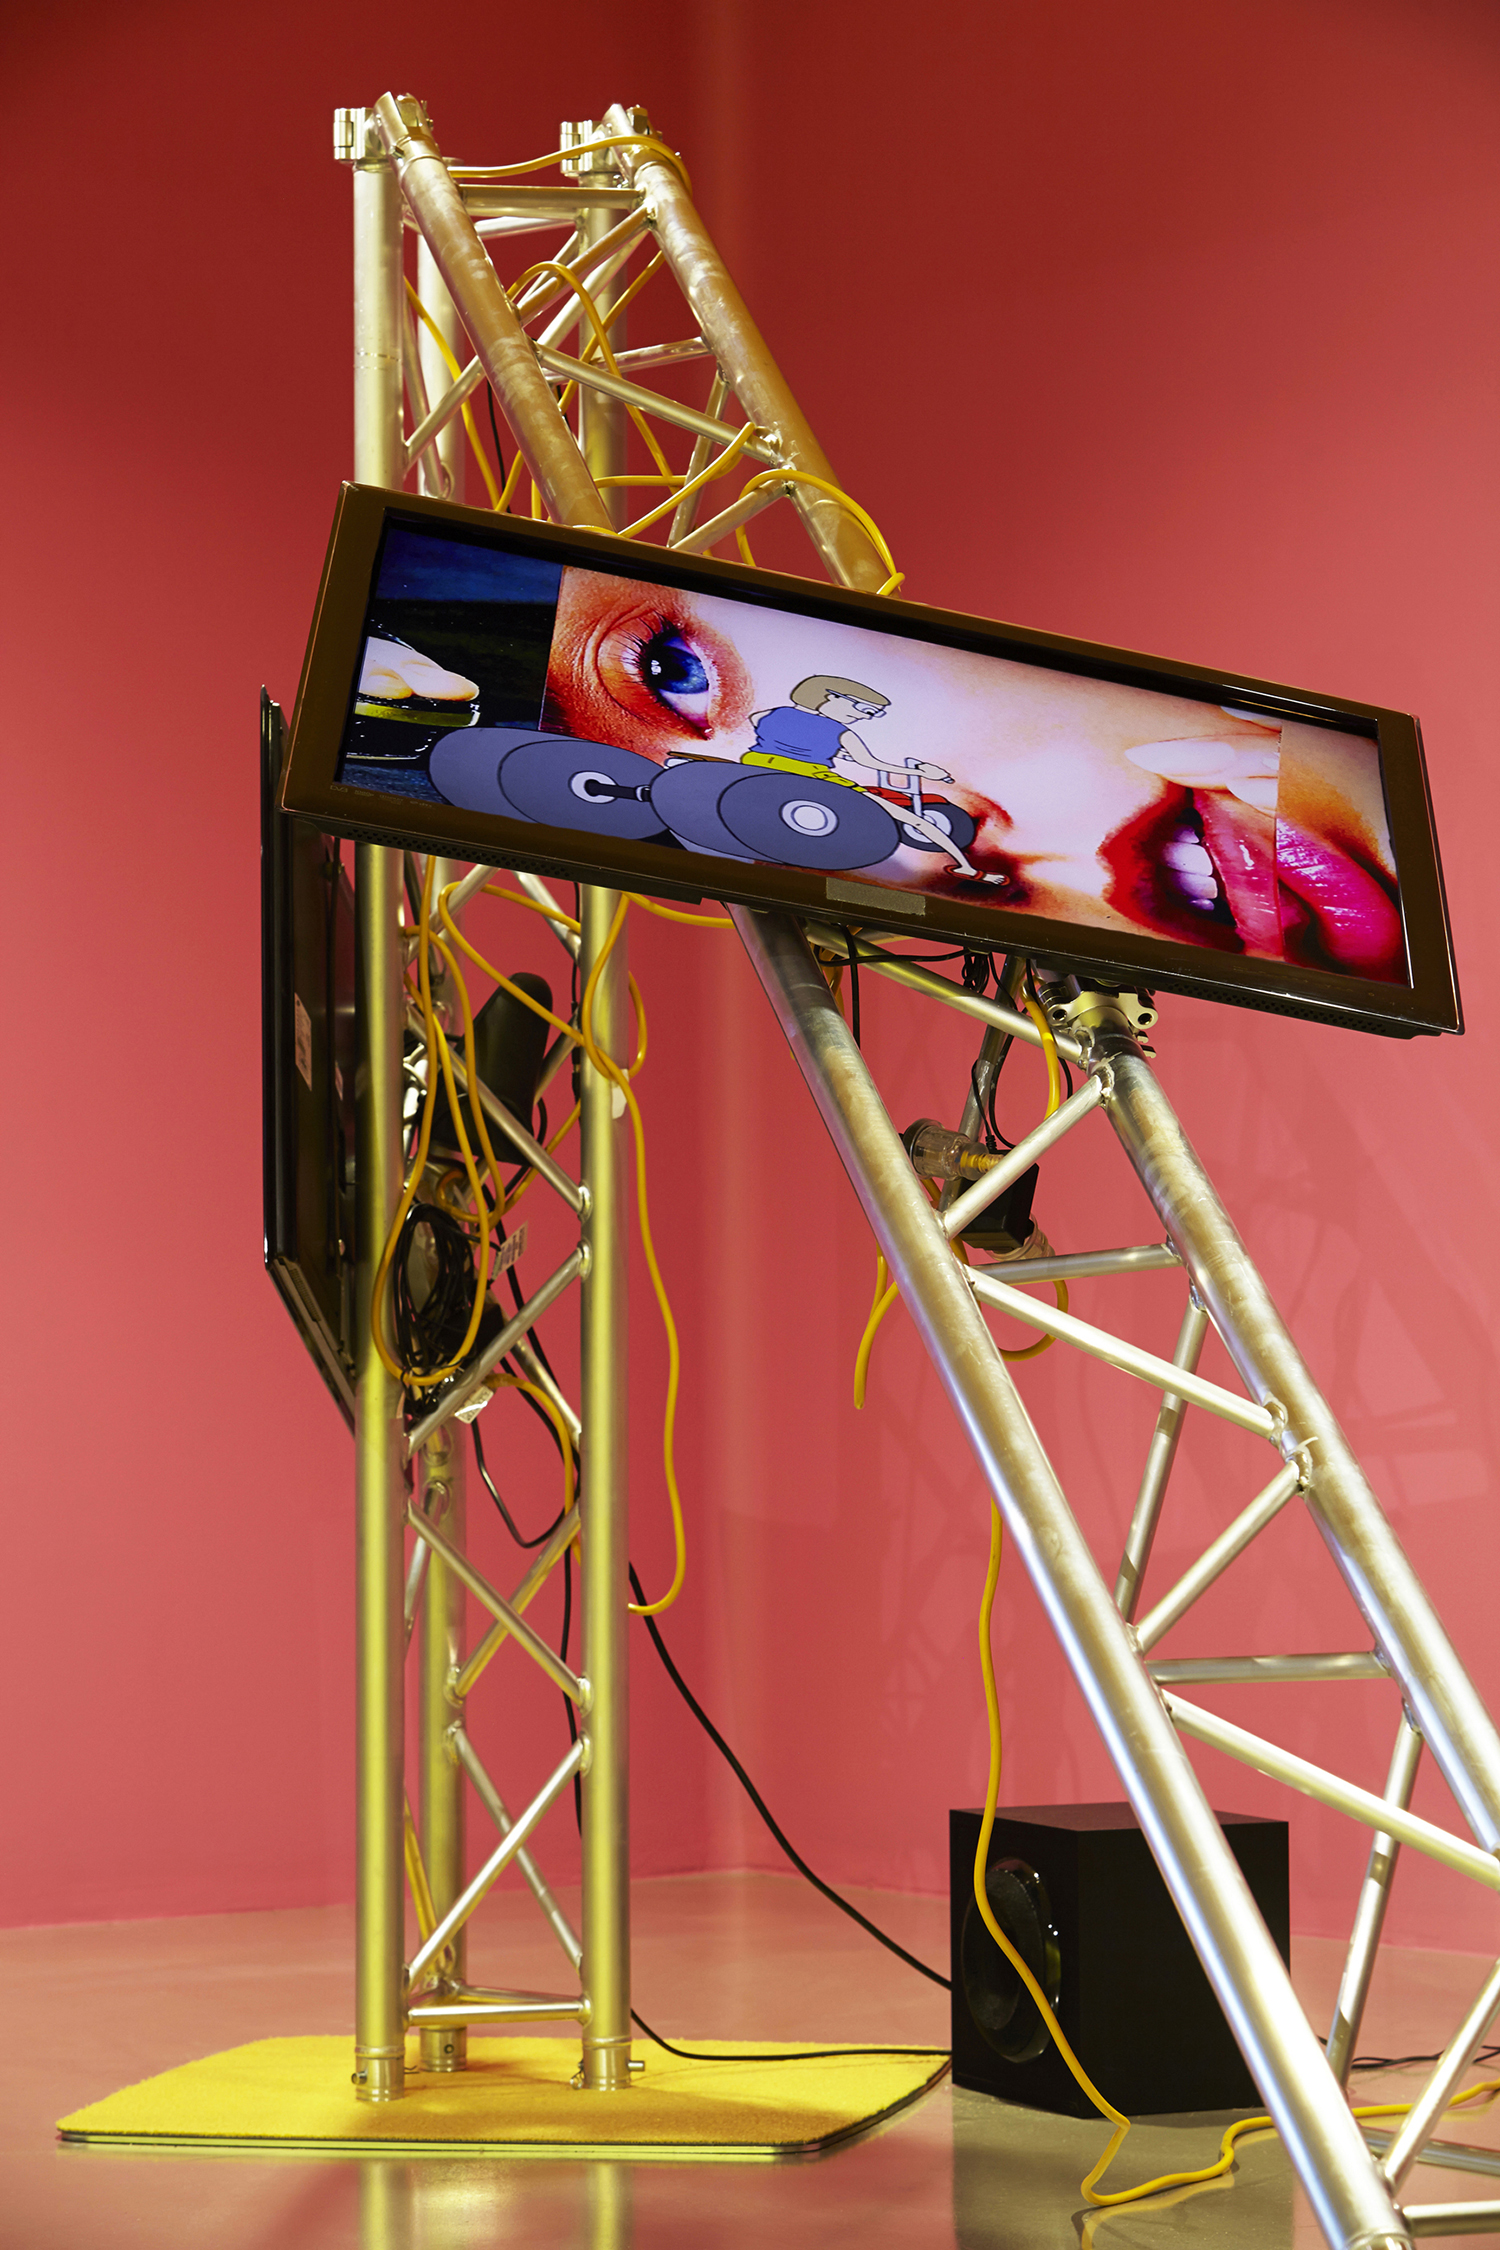 TV Moore, 'Rum Jungle', installation view, Campbeltown Art Centre, 2014, Photo: Zan Wimberley